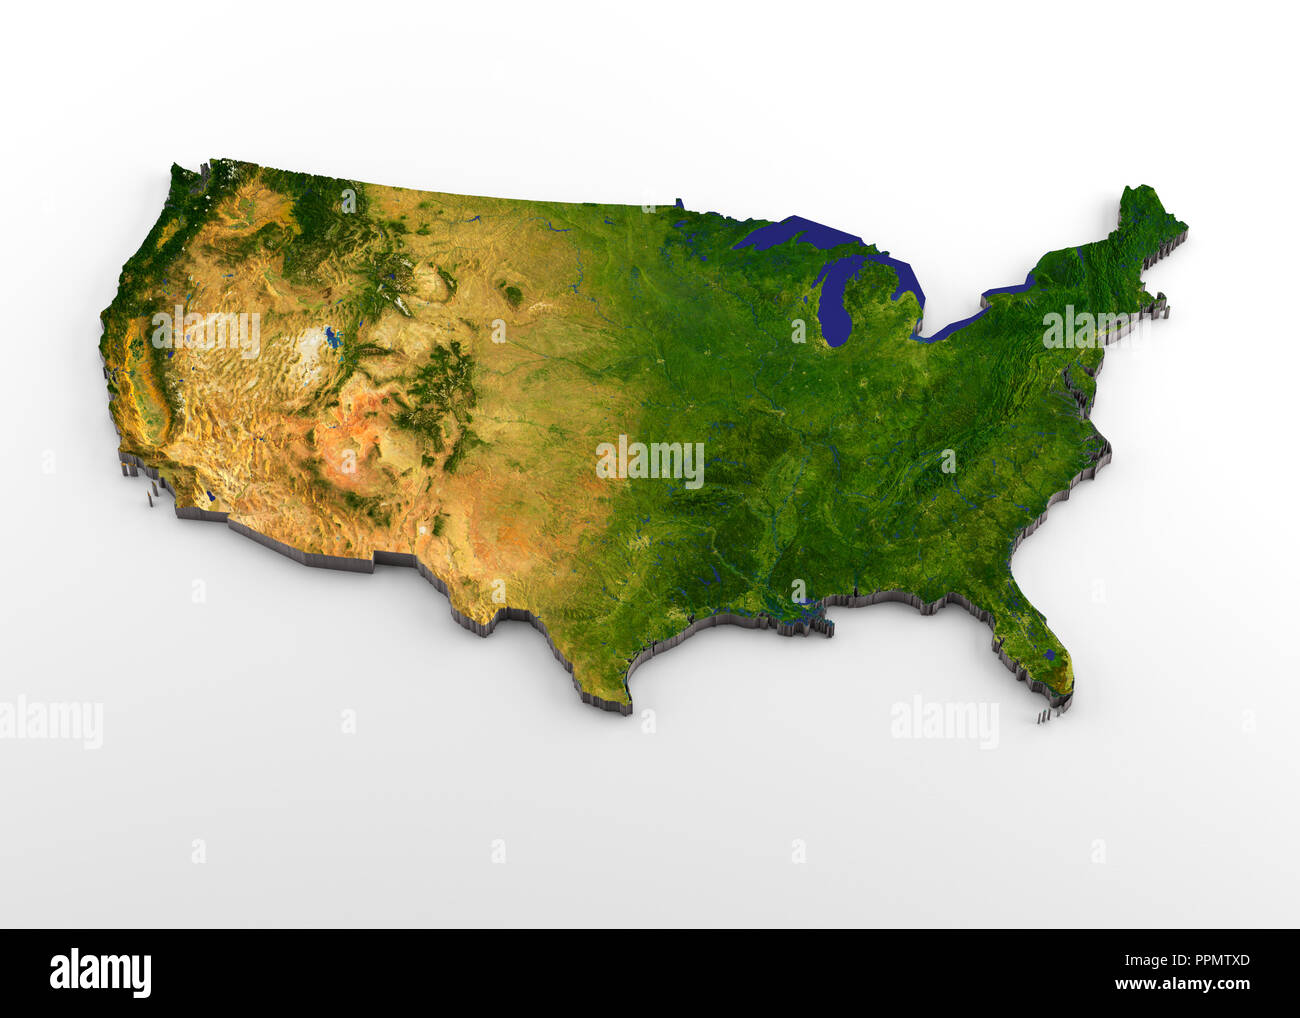 Elevation Map United States Stock Photos & Elevation Map ...